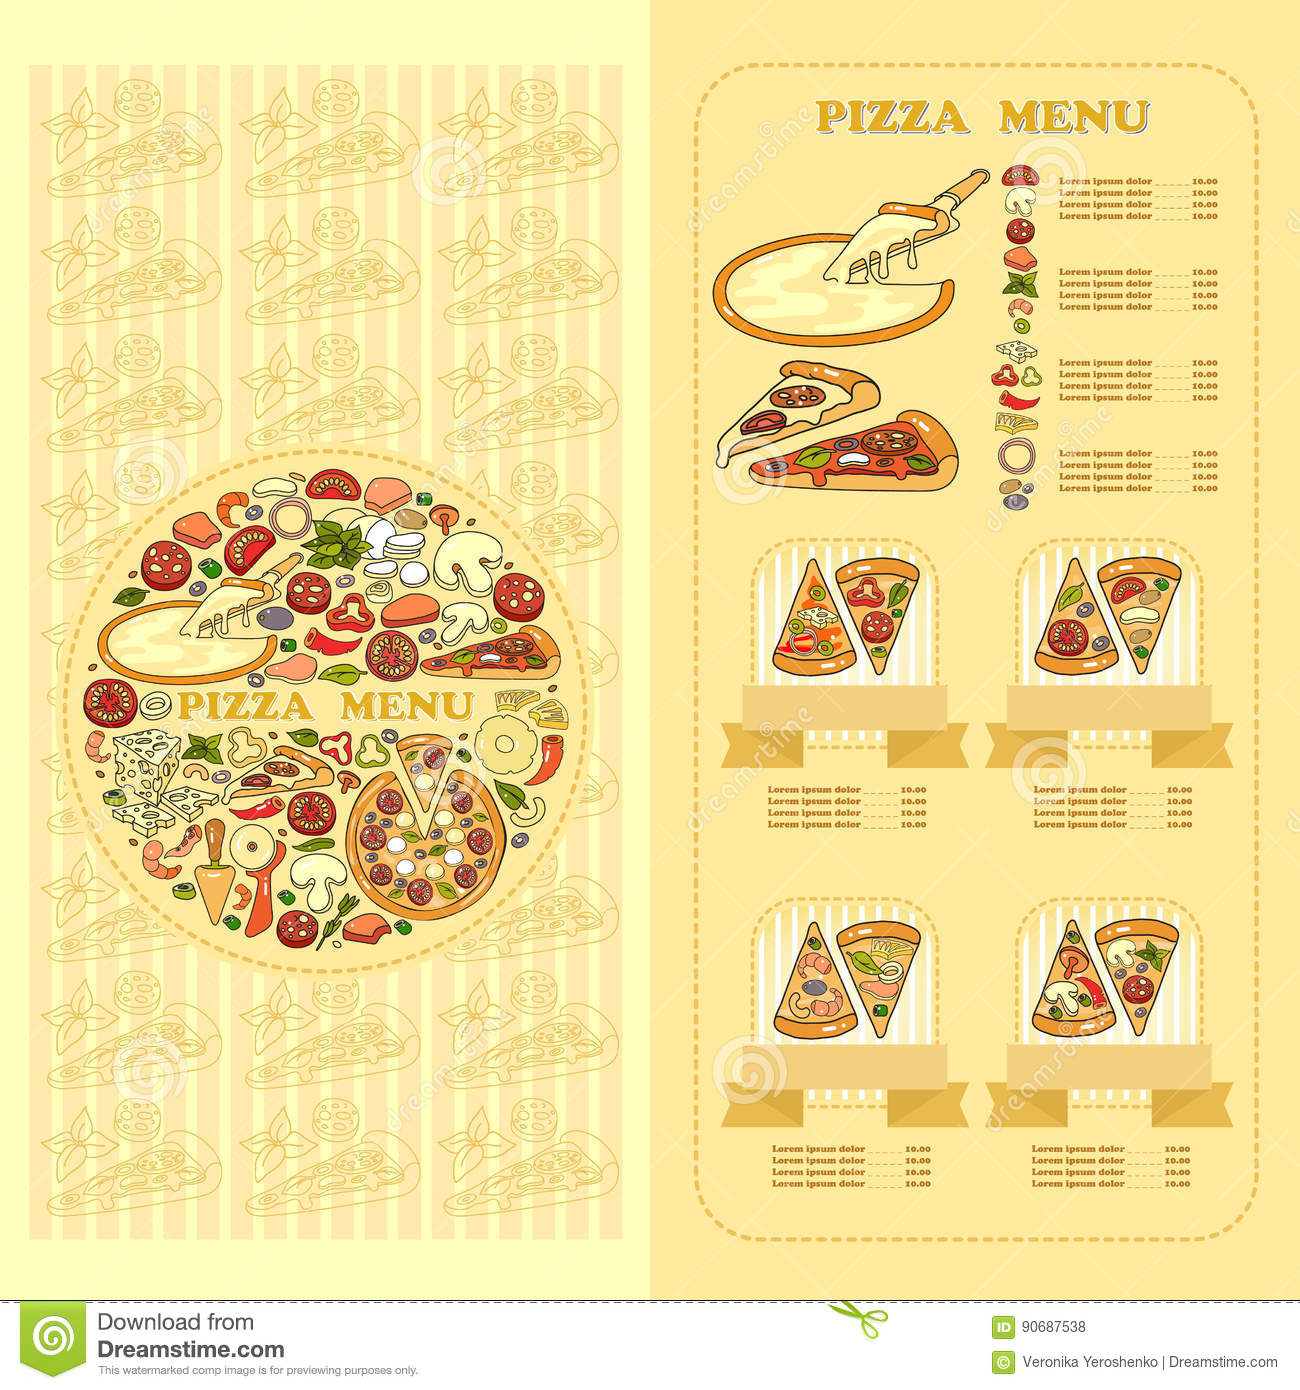 Pizza Menu card. Set of cute various pizza ingredient icons.